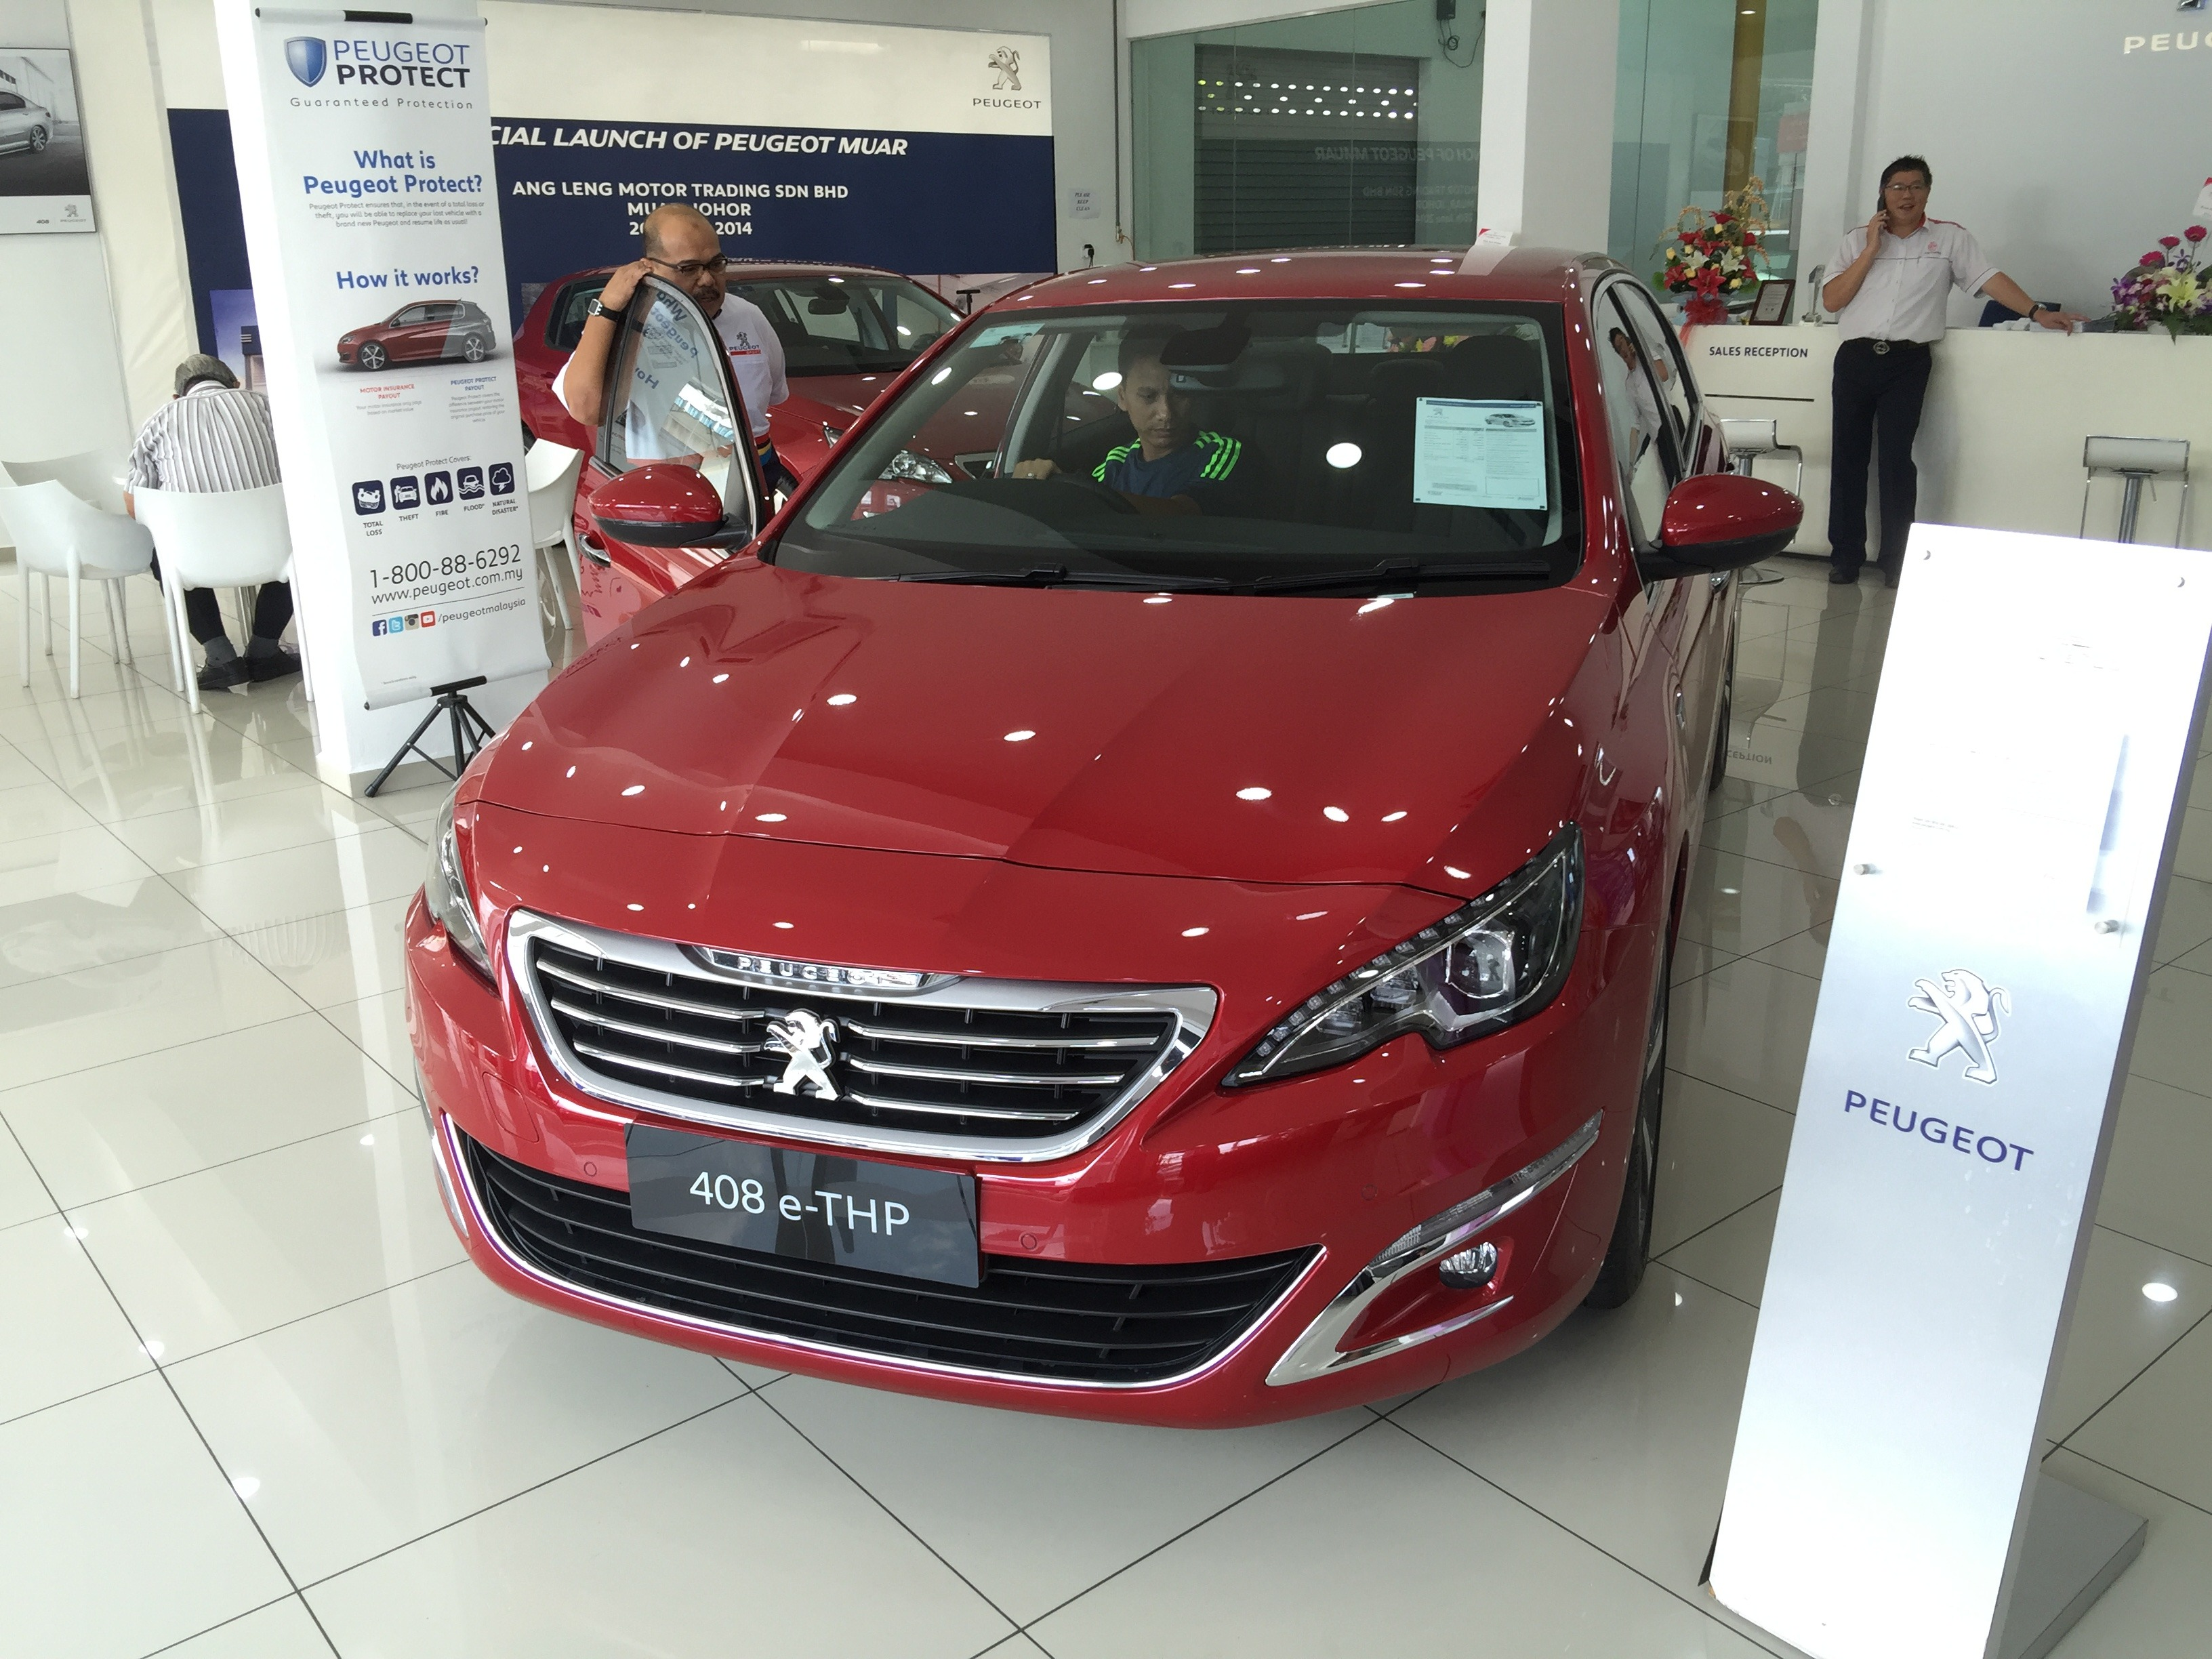 Launching New Peugeot 408 e-THP